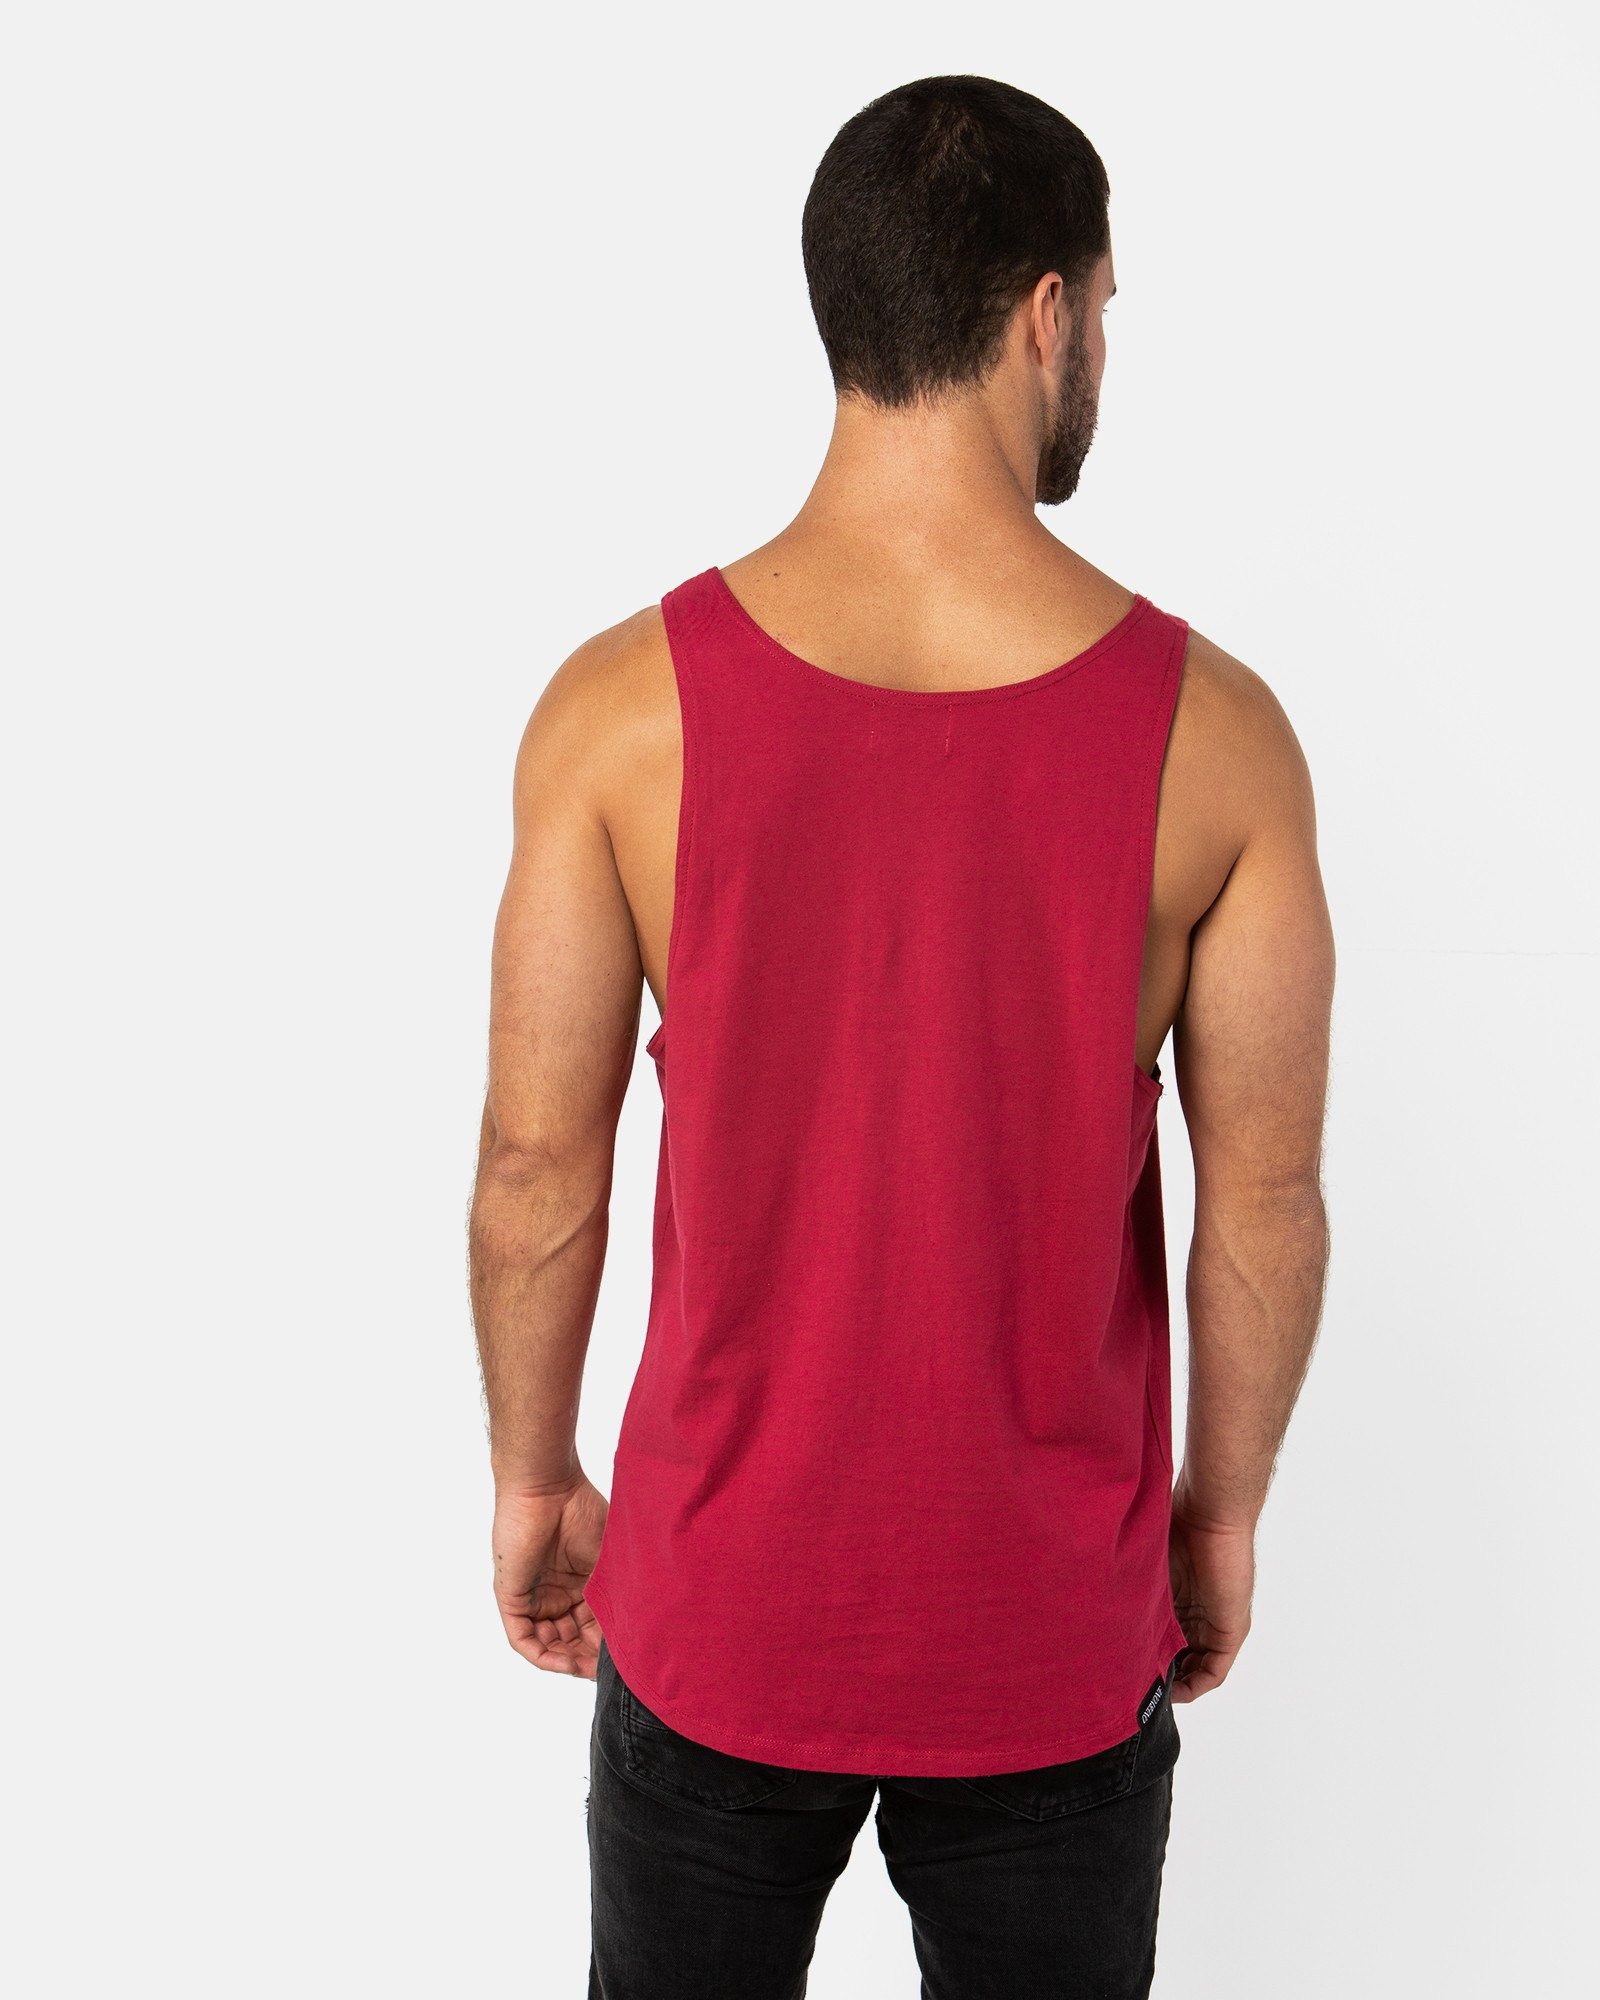 CLASSIC RED SINGLET